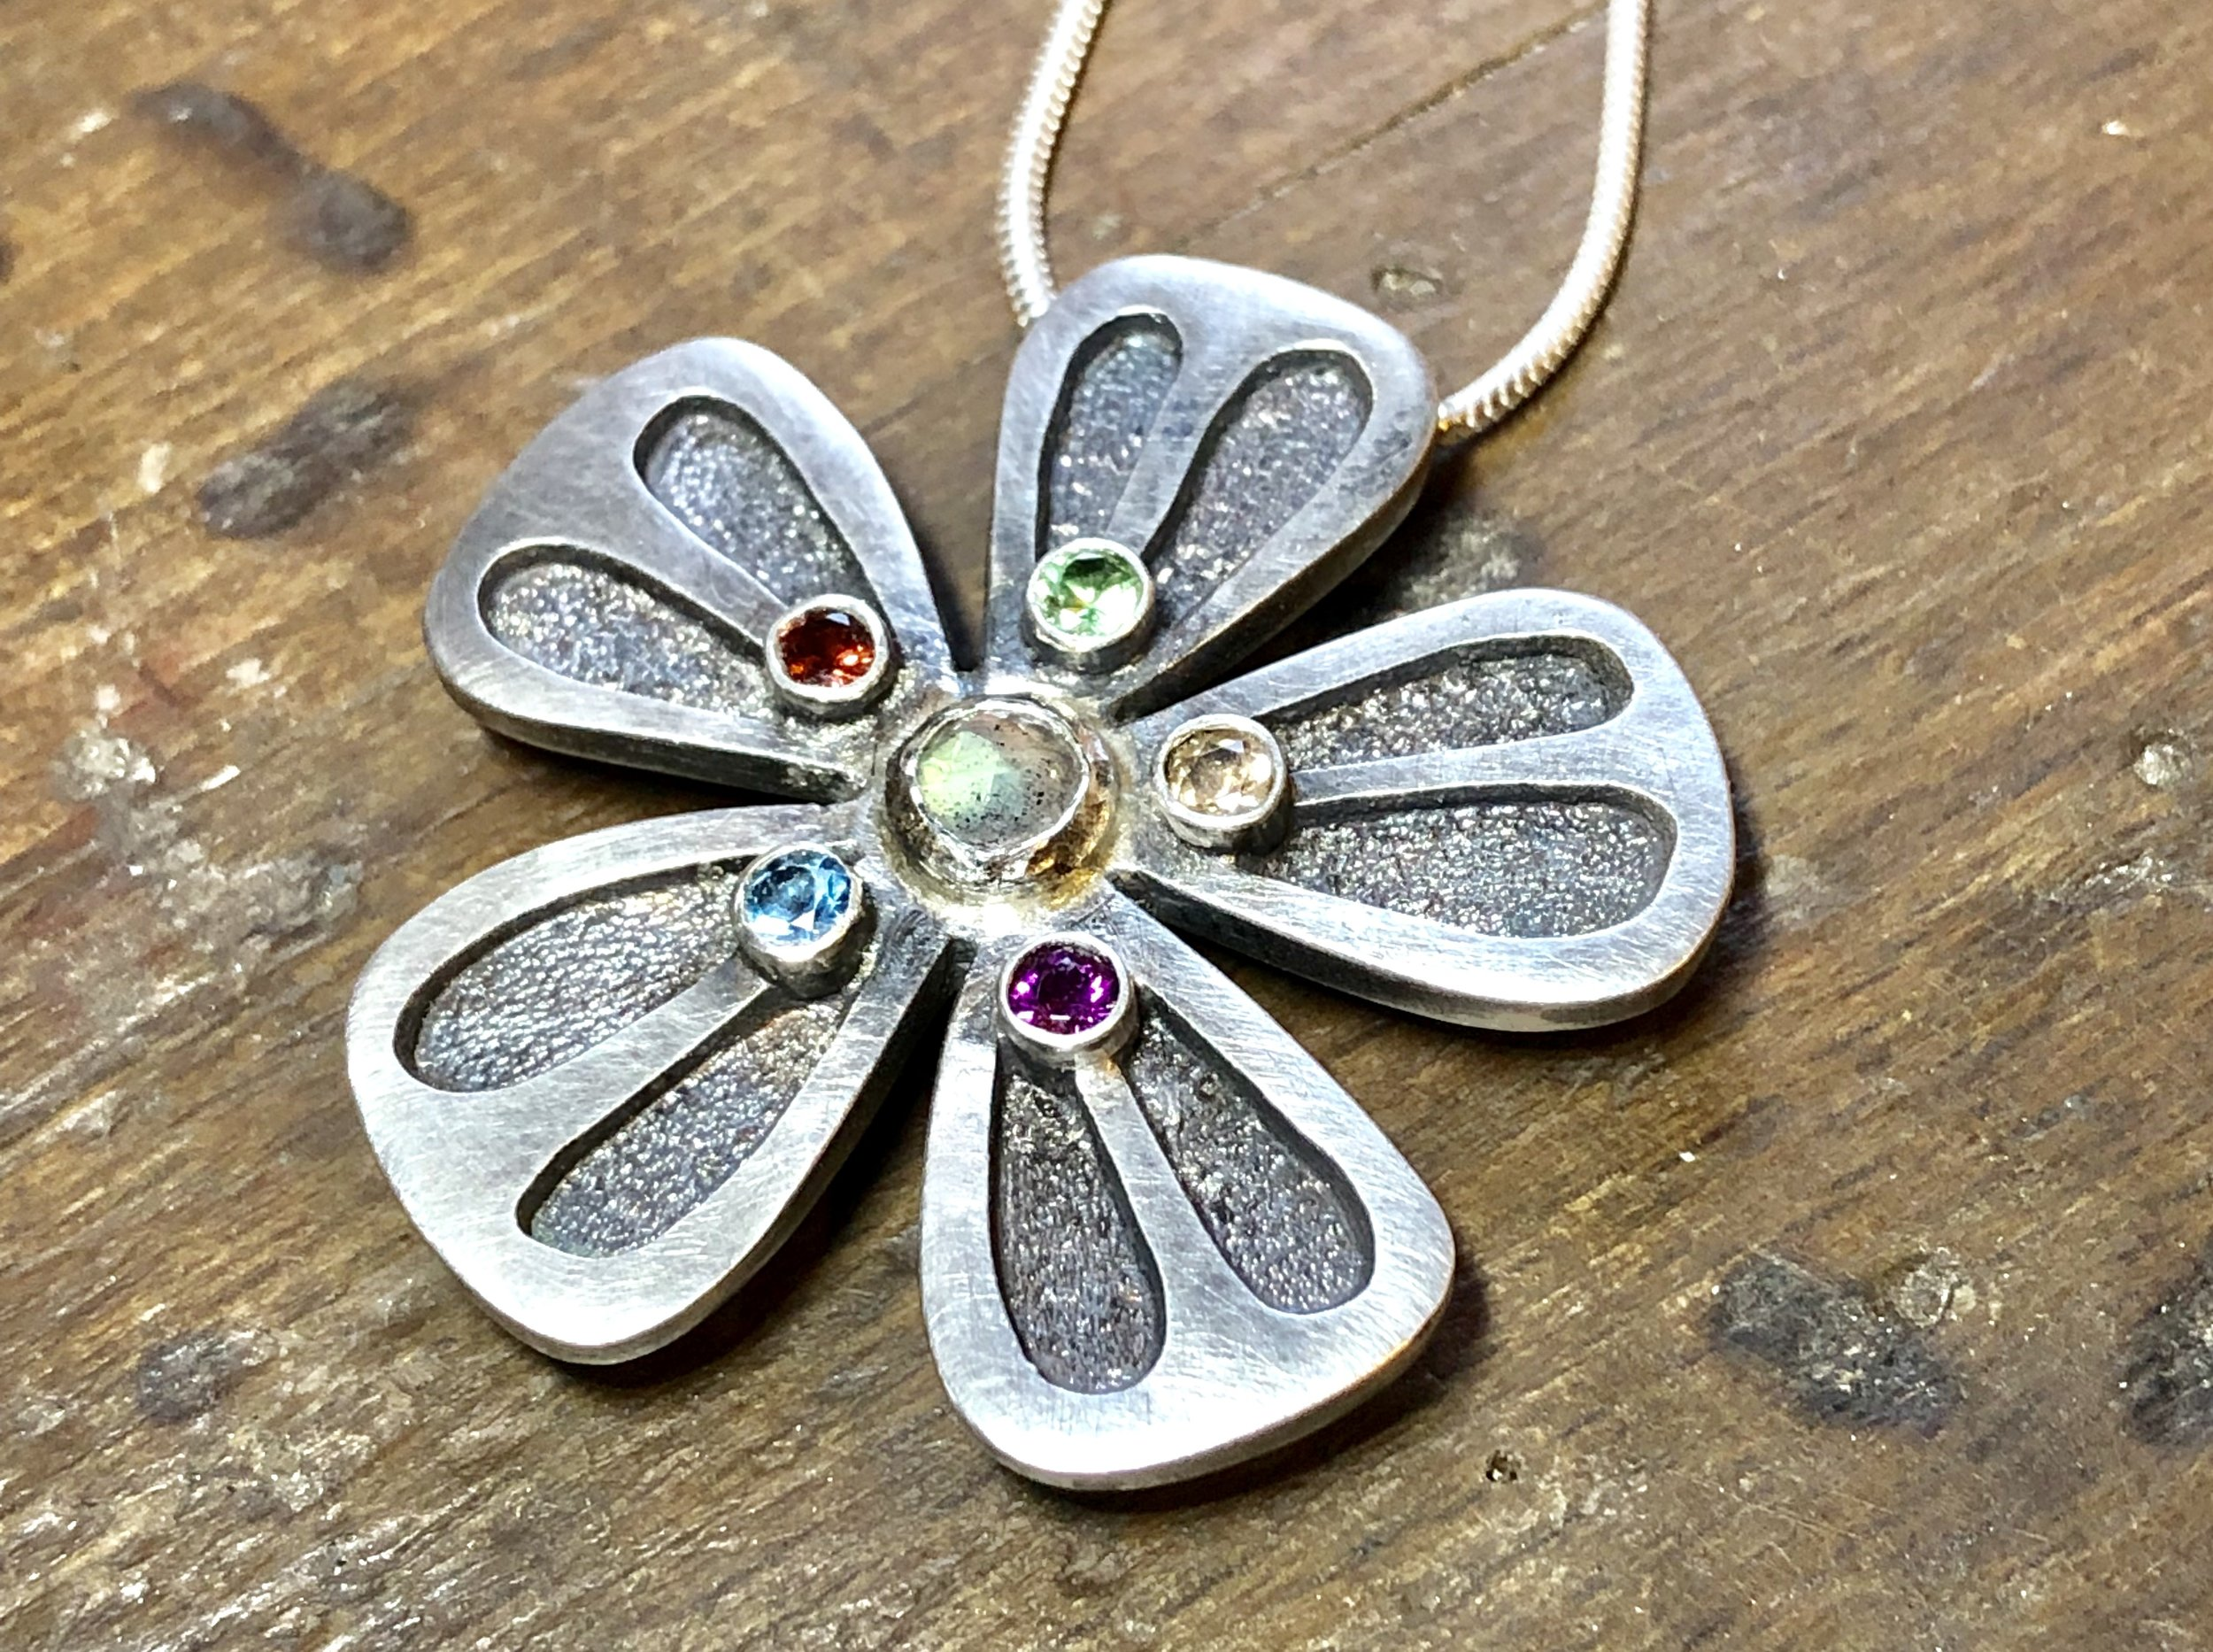 Recycled silver brooch/pendant